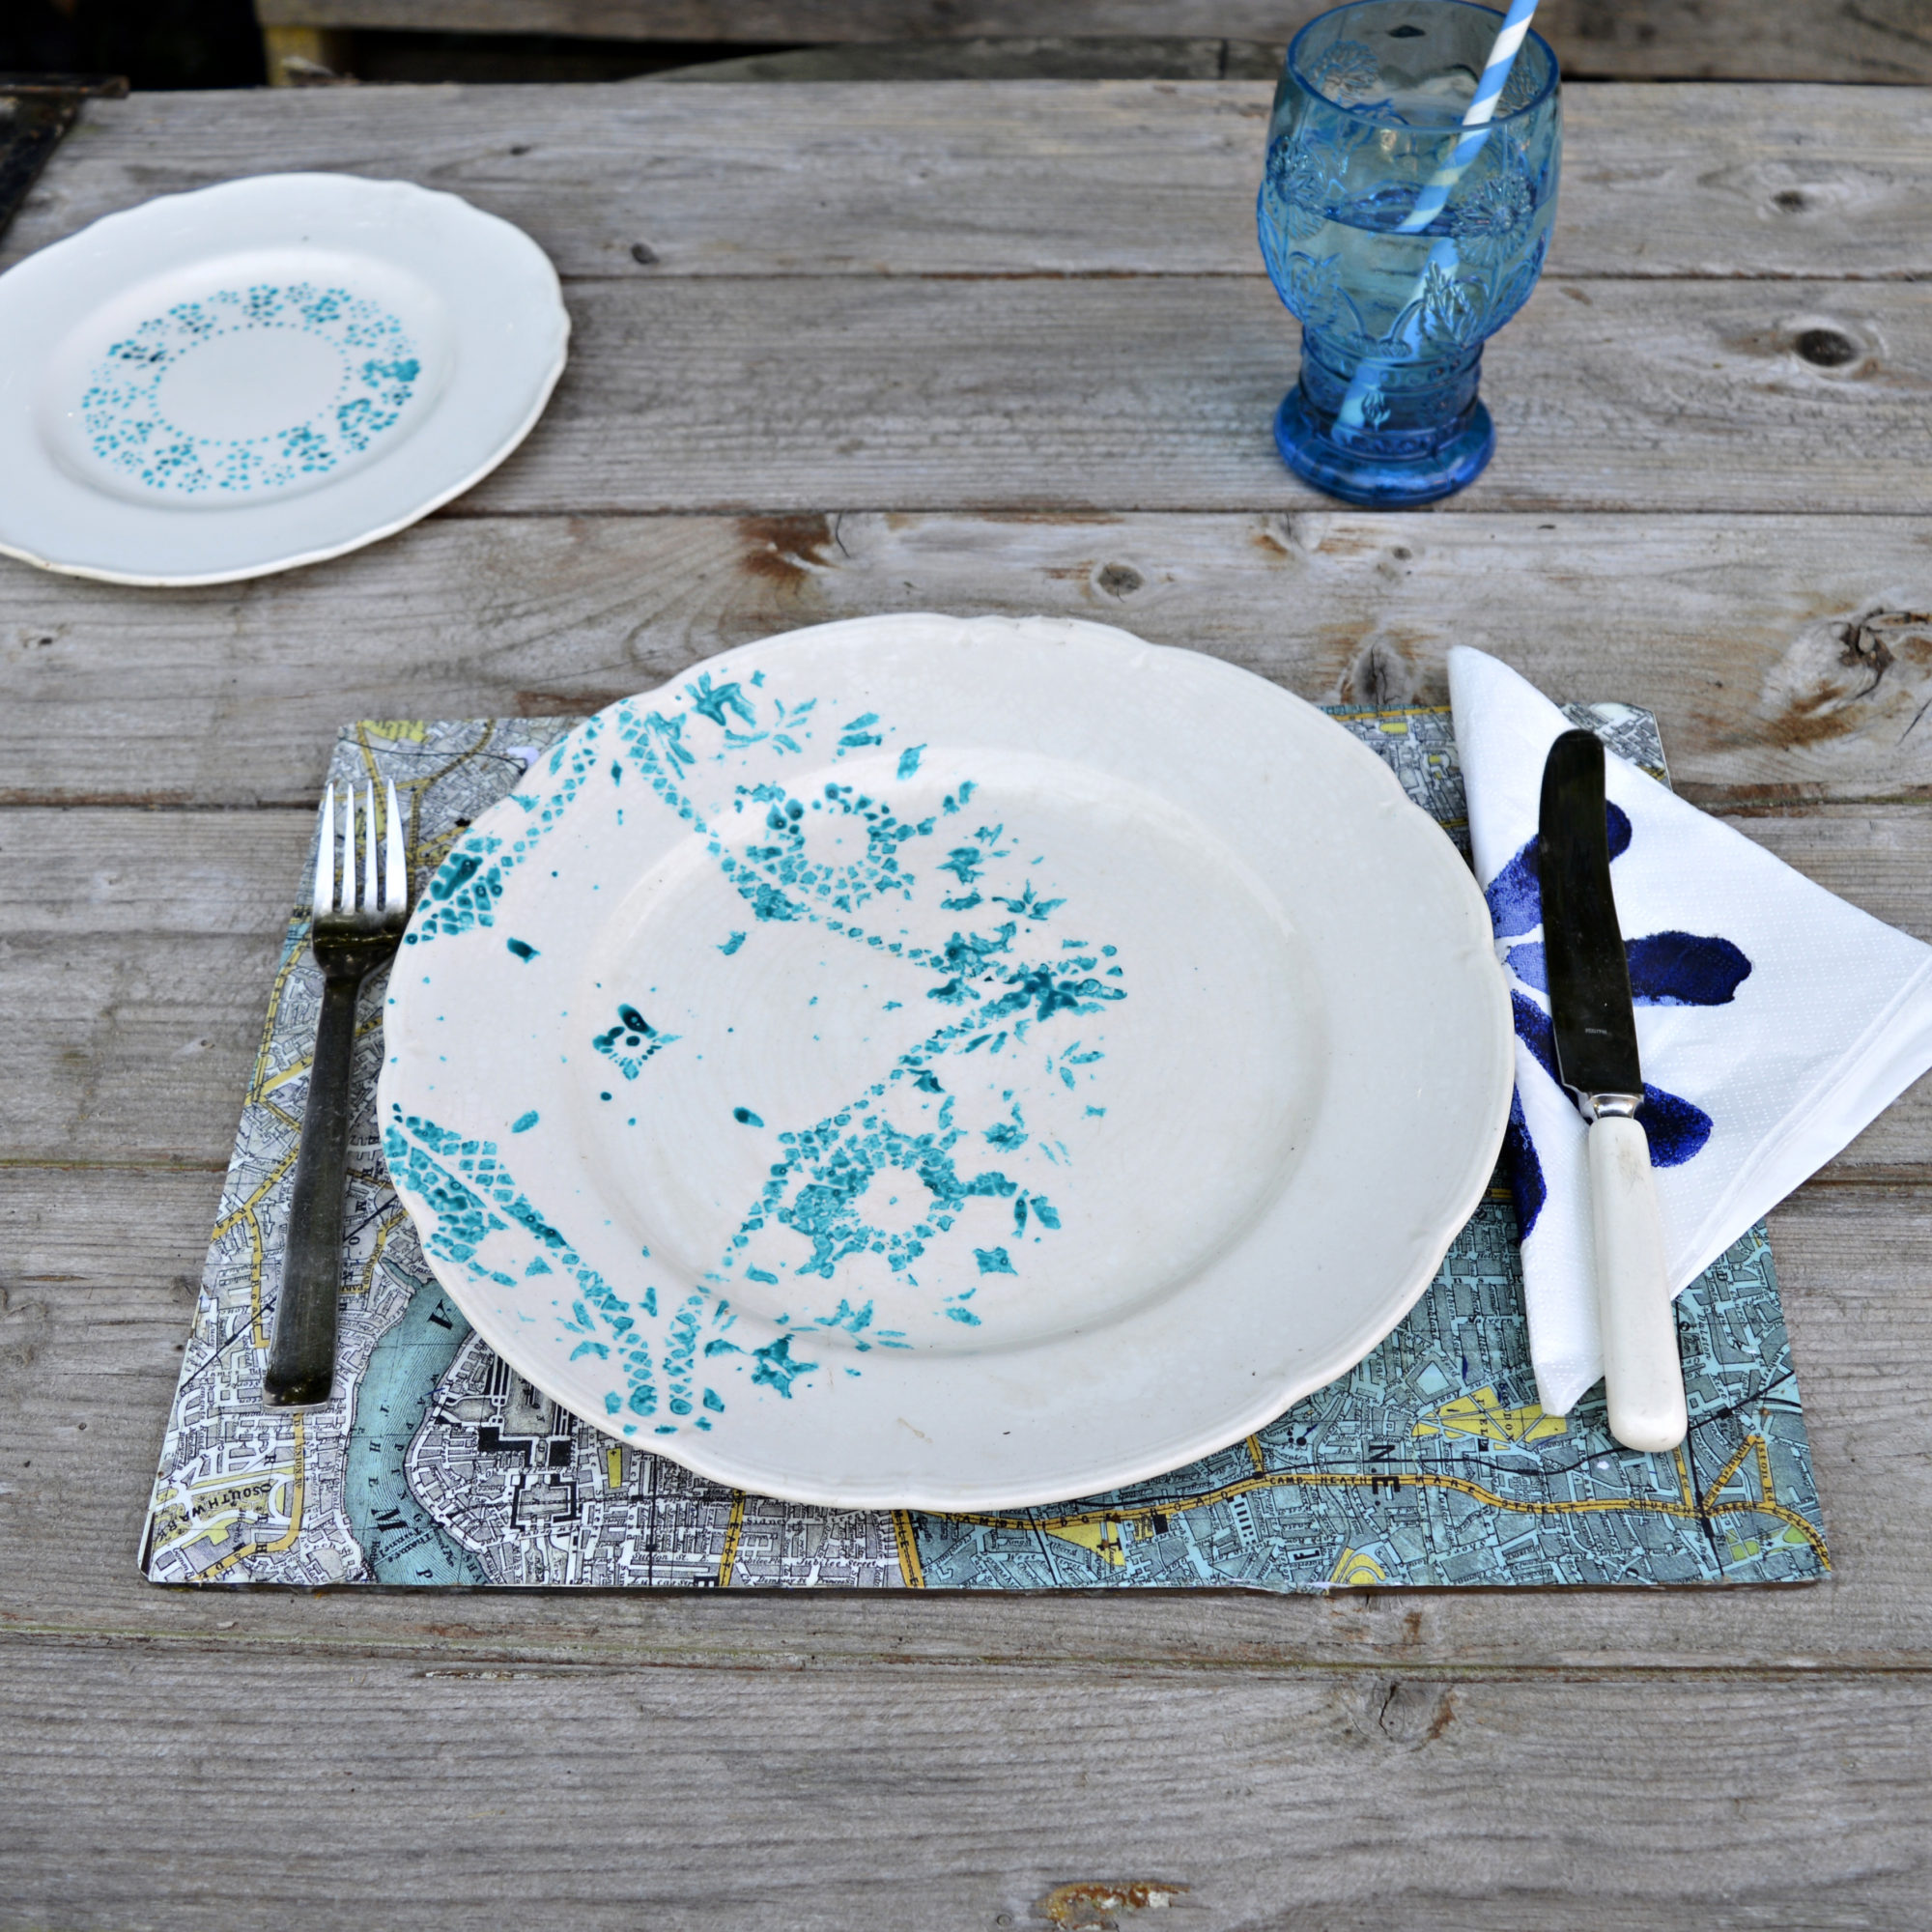 Upcycled vintage painted plate using a paper doily as a stencil.